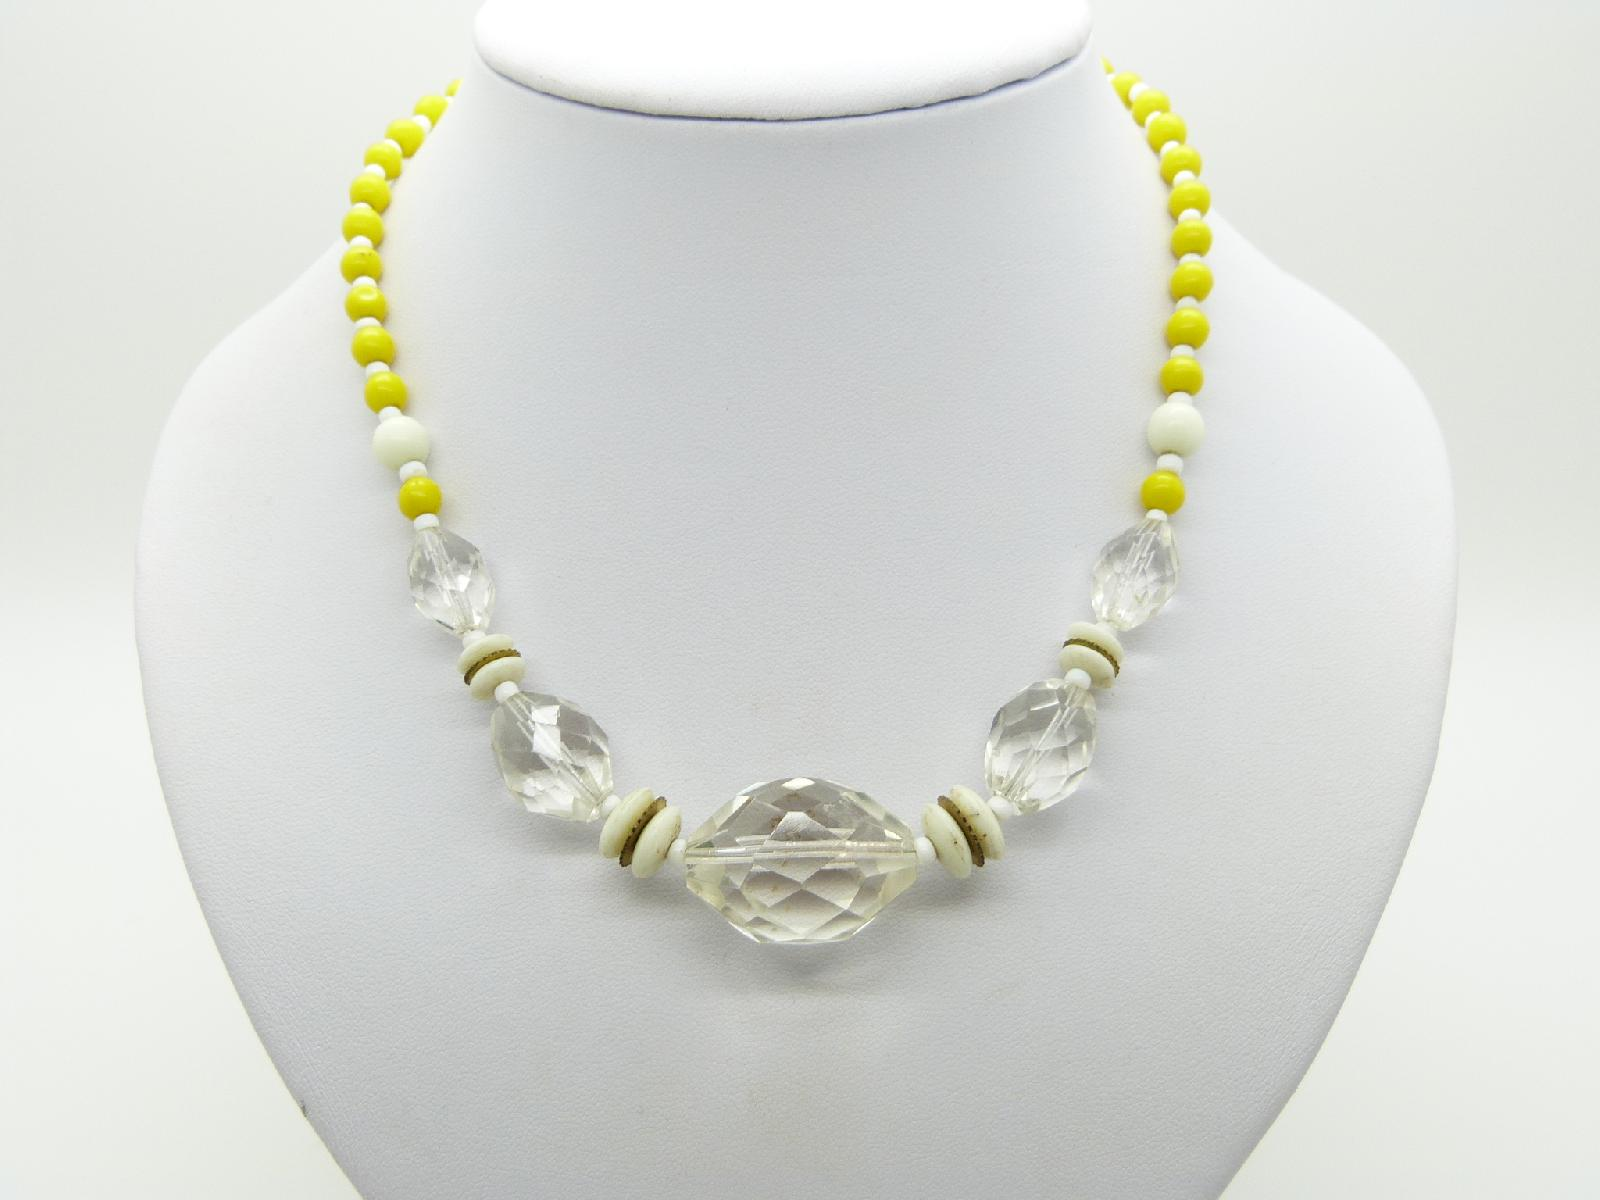 Vintage 50s Yellow White and Crystal Glass Bead Czech Necklace Diamante Clasp